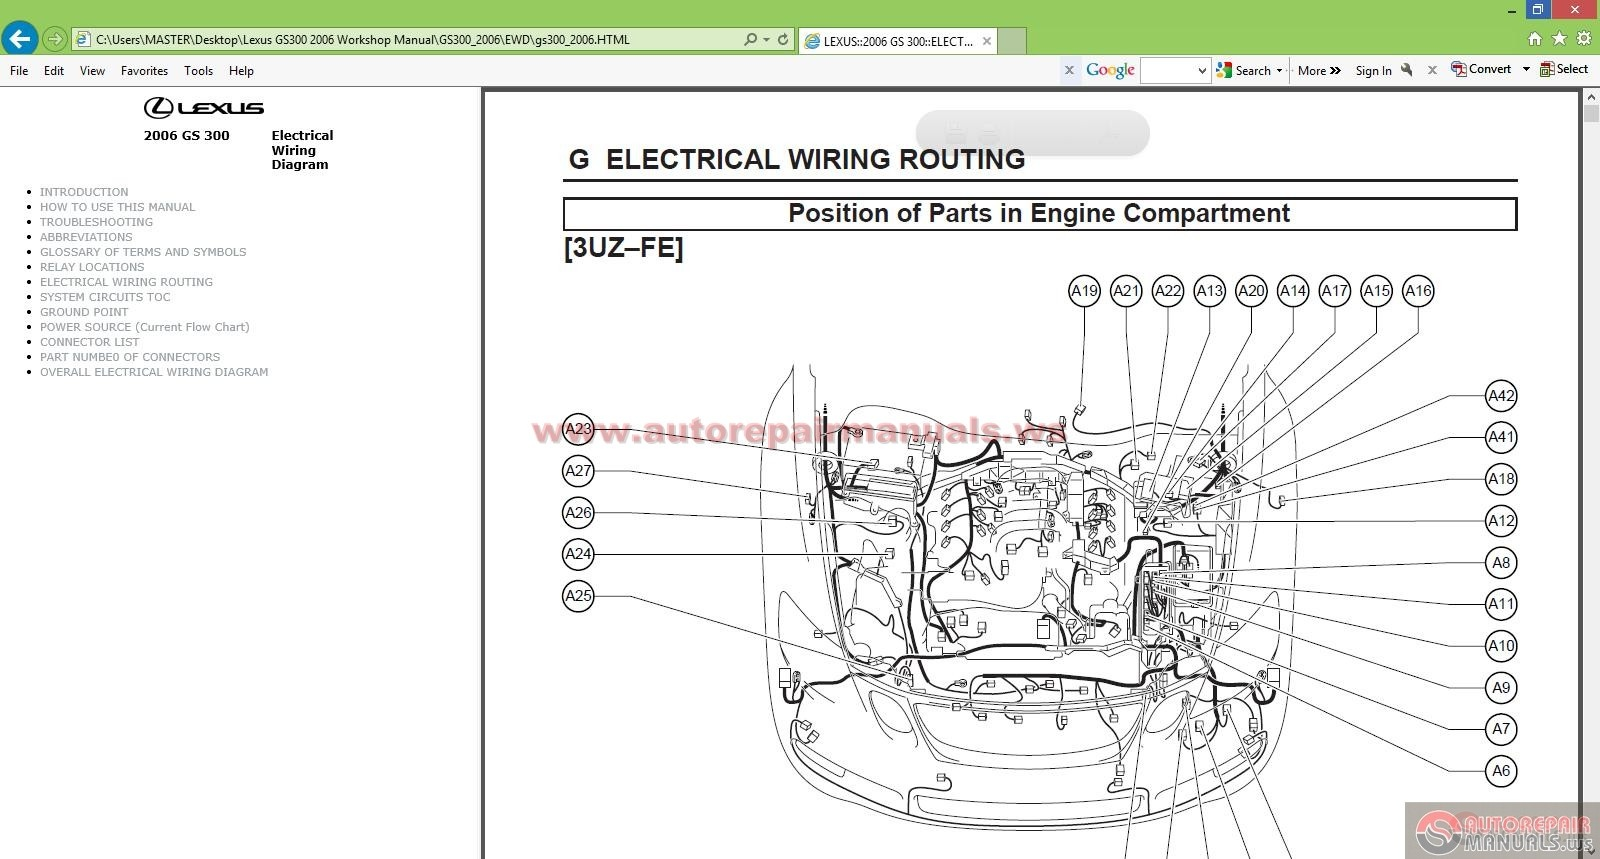 2012 Lexus Is250 Cigarette Lighter Fuse Wiring Diagrams on 2007 chrysler 300 lighter fuse